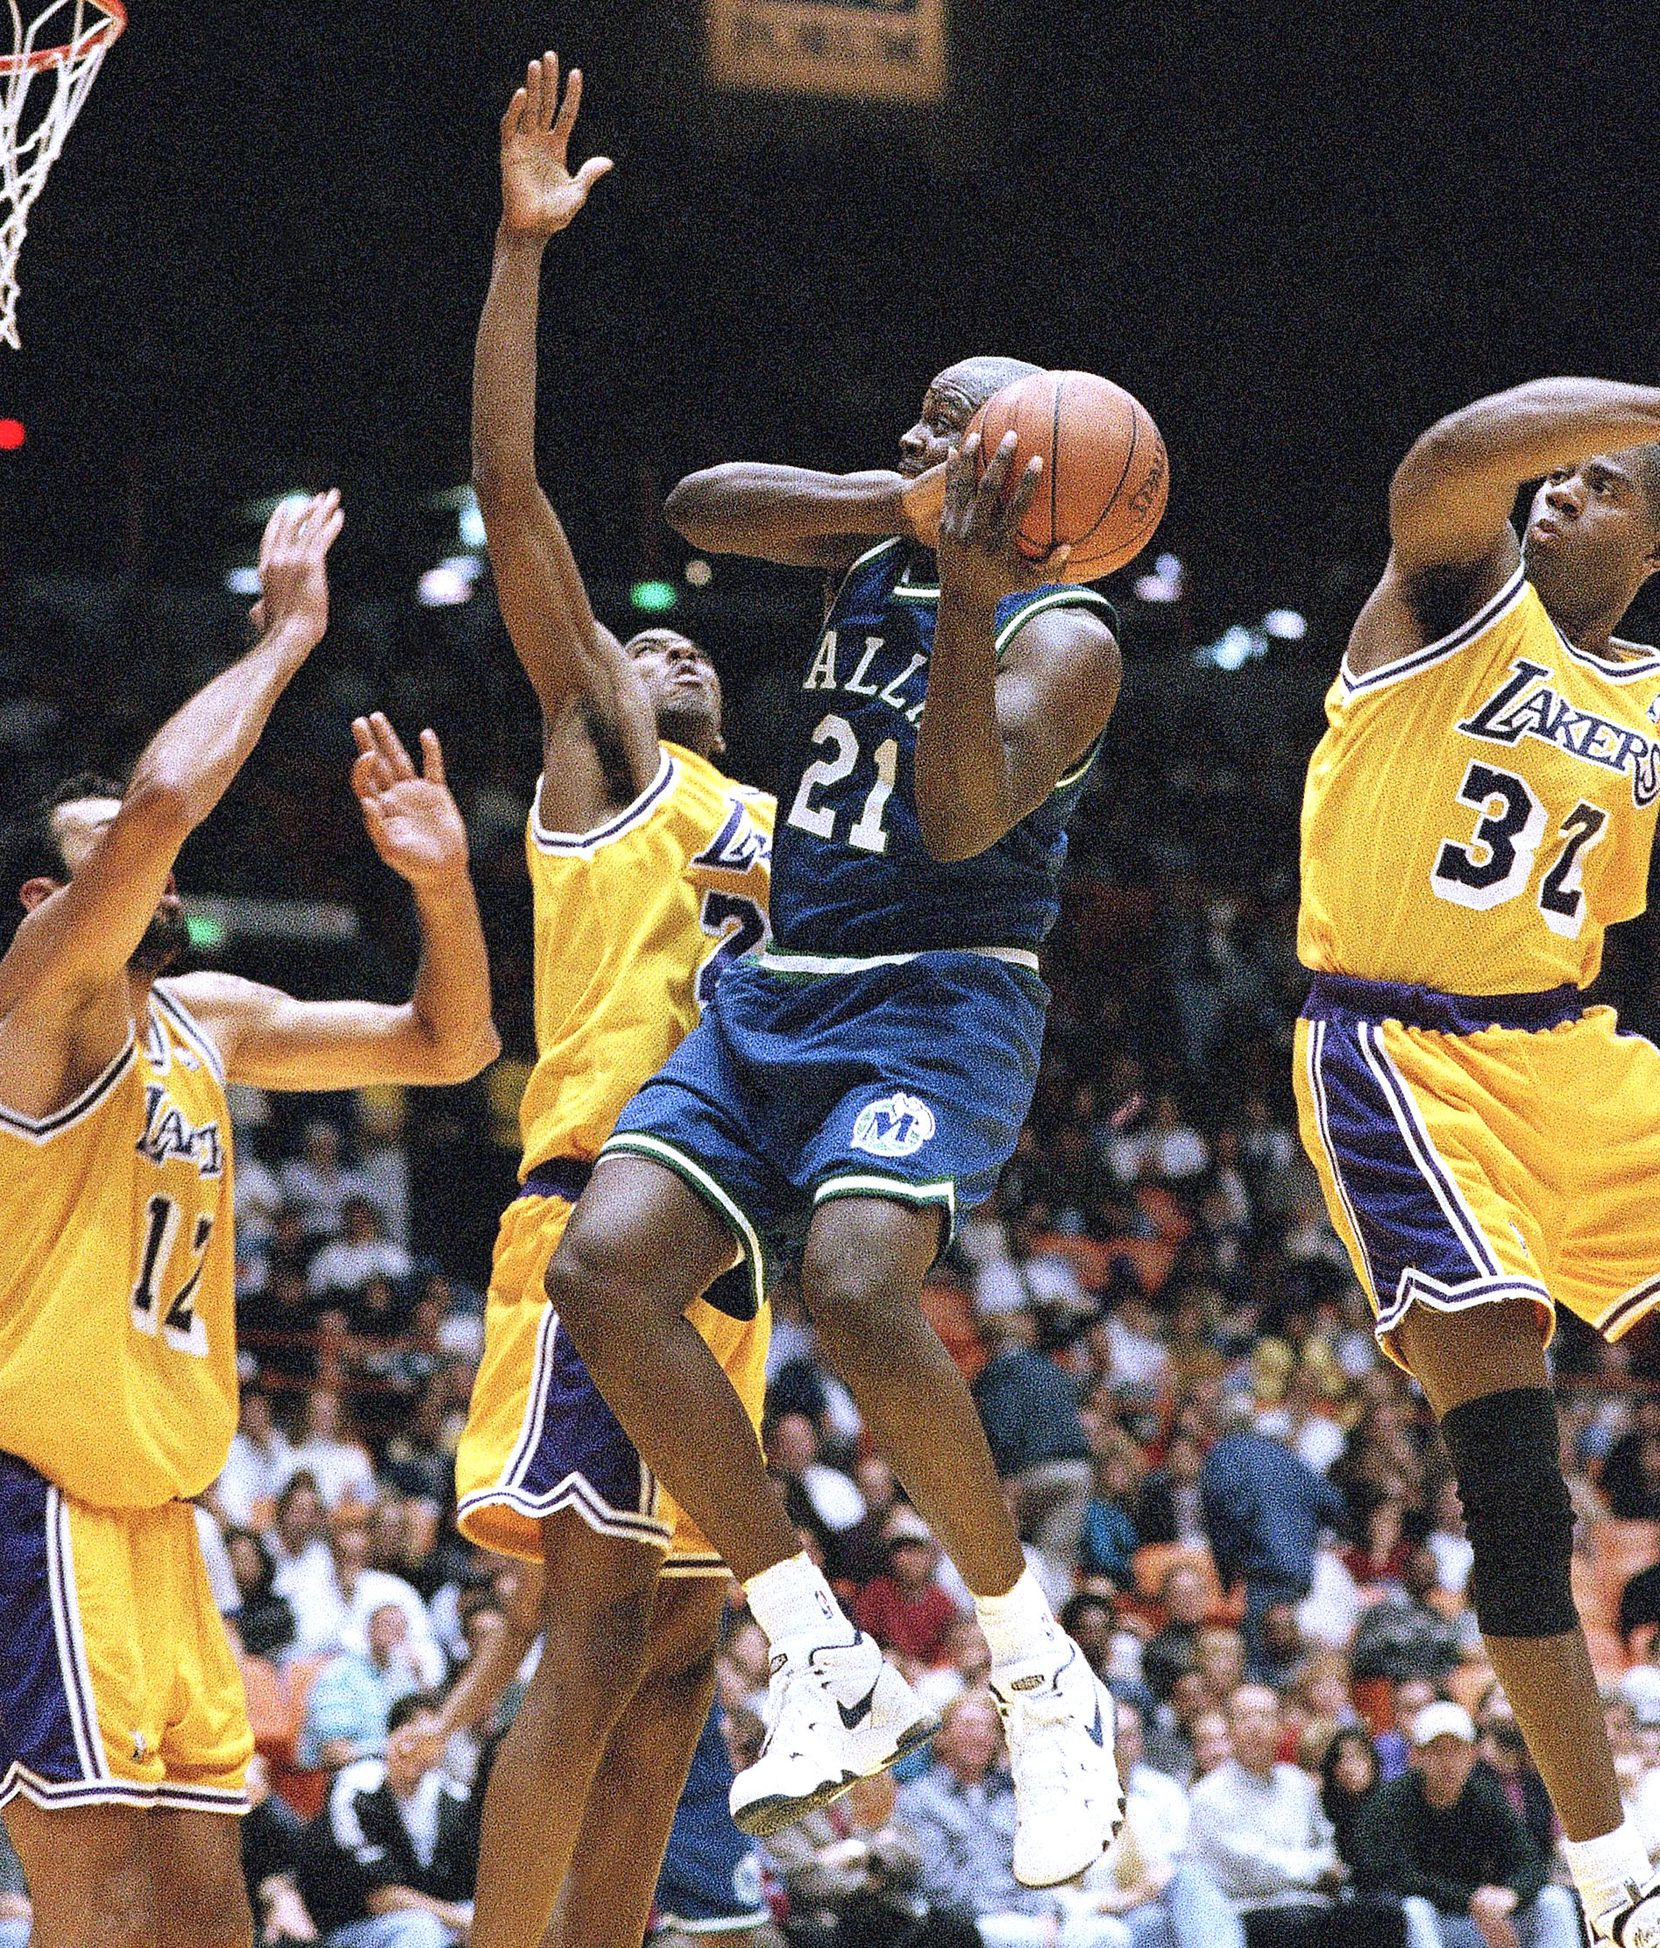 Dallas Mavericksí George McCloud attempts to pass Los Angeles Lakers, from left Vlade Divac, Eddie Jones and Earvin ìMagicî Johnson during second quarter action in Inglewood, California on Friday, Feb. 16, 1996. The Lakers defeated the Mavericks 119-114. (AP Photo/Michael Caulfield)